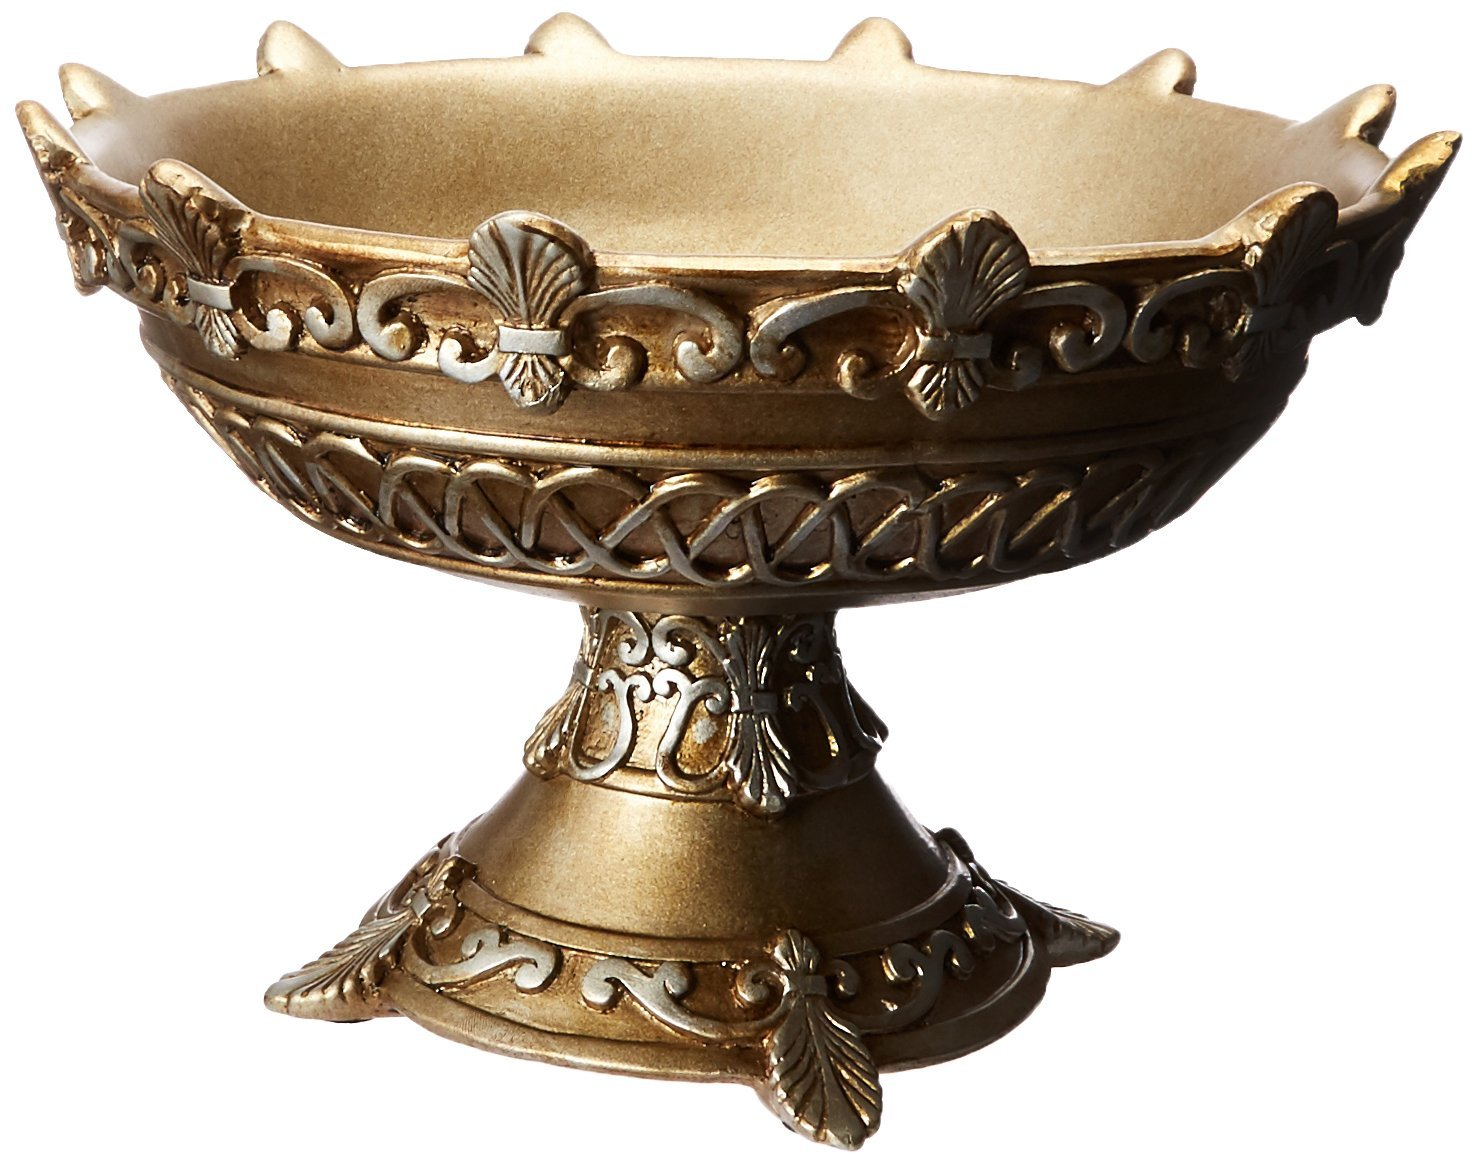 Design Toscano PD80980 King Arthur's Vessel of Avalon Centrepiece Bowl